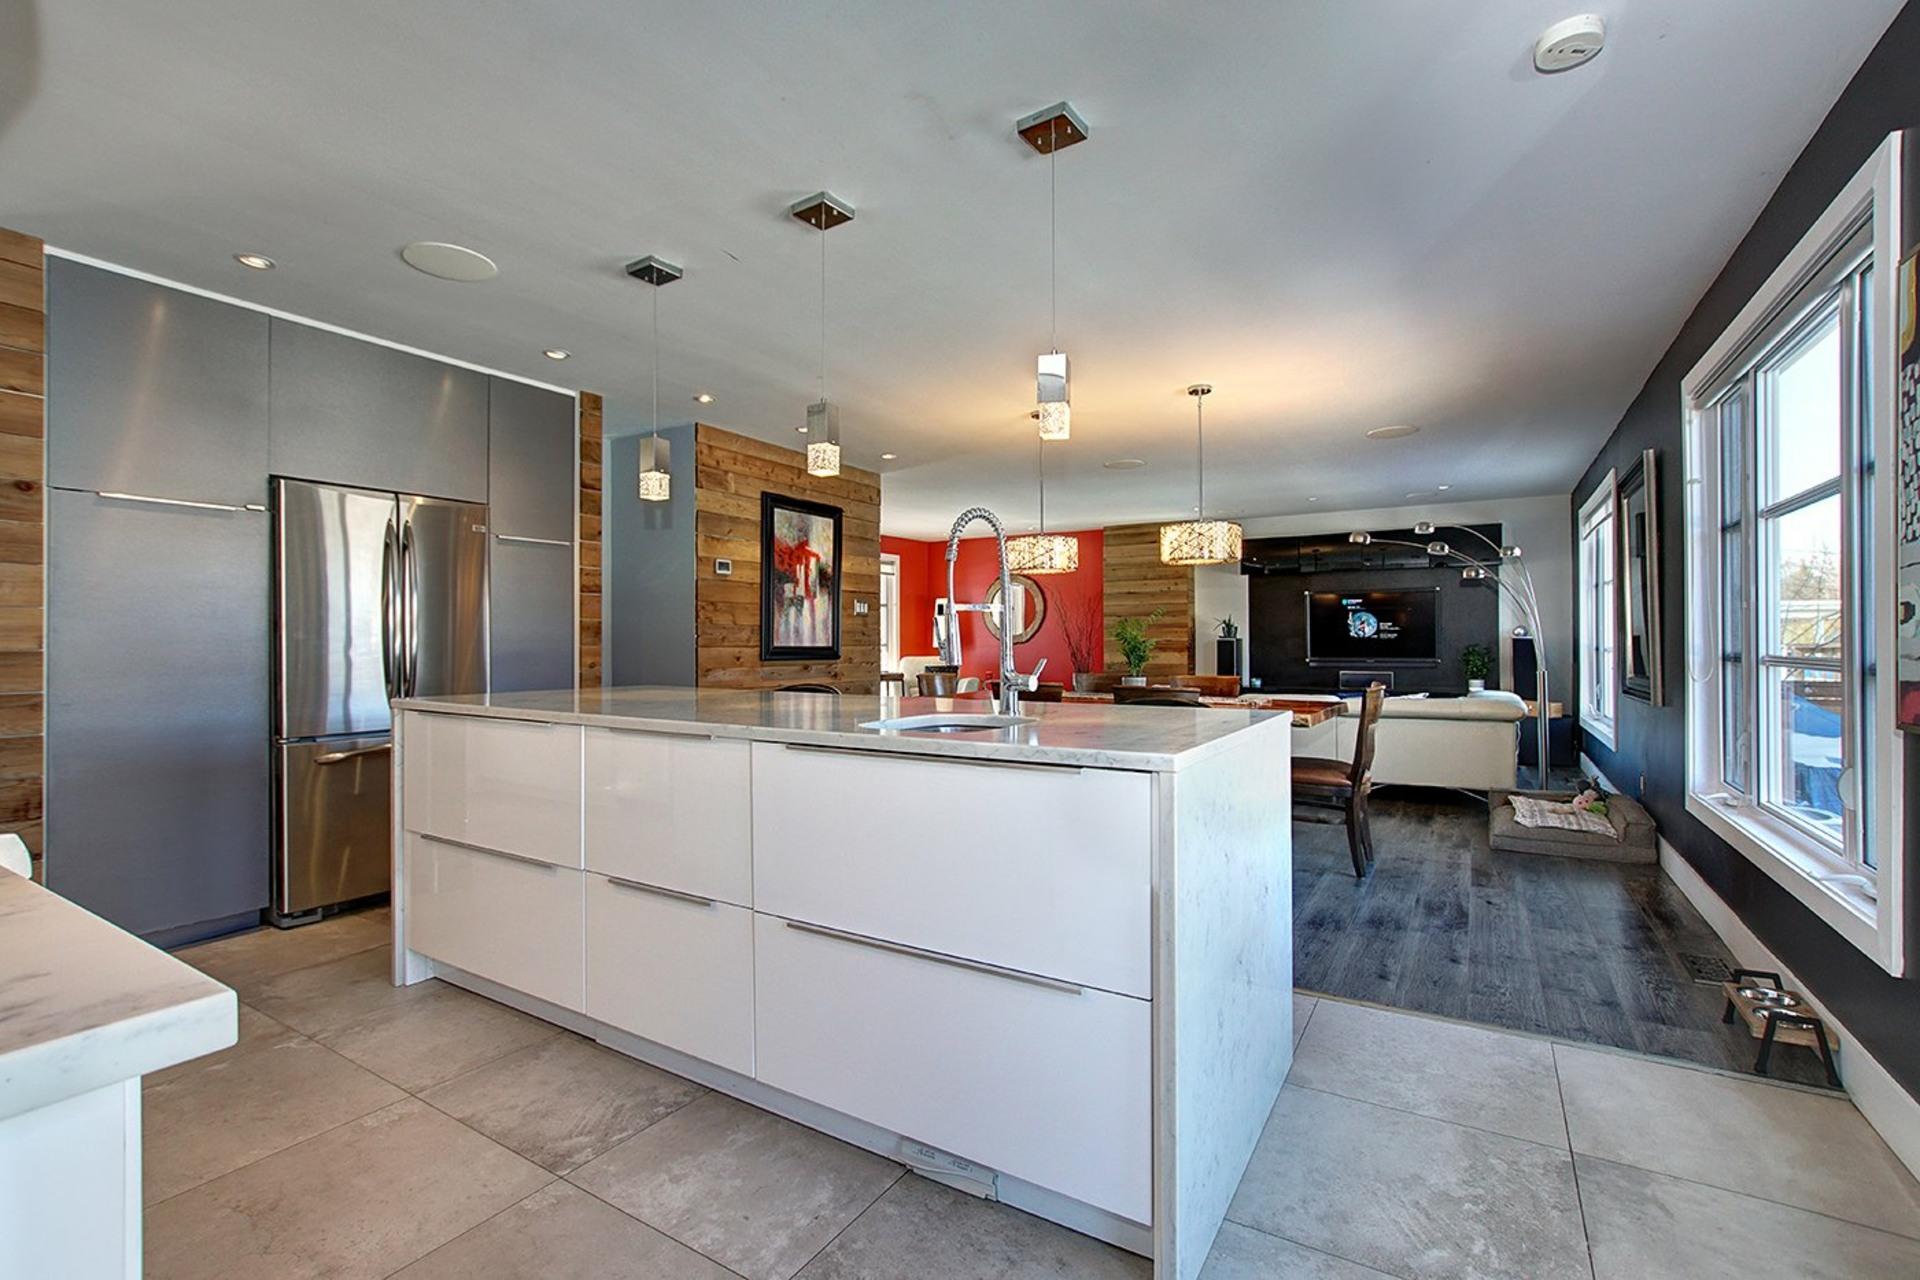 image 13 - House For sale Repentigny Repentigny  - 16 rooms